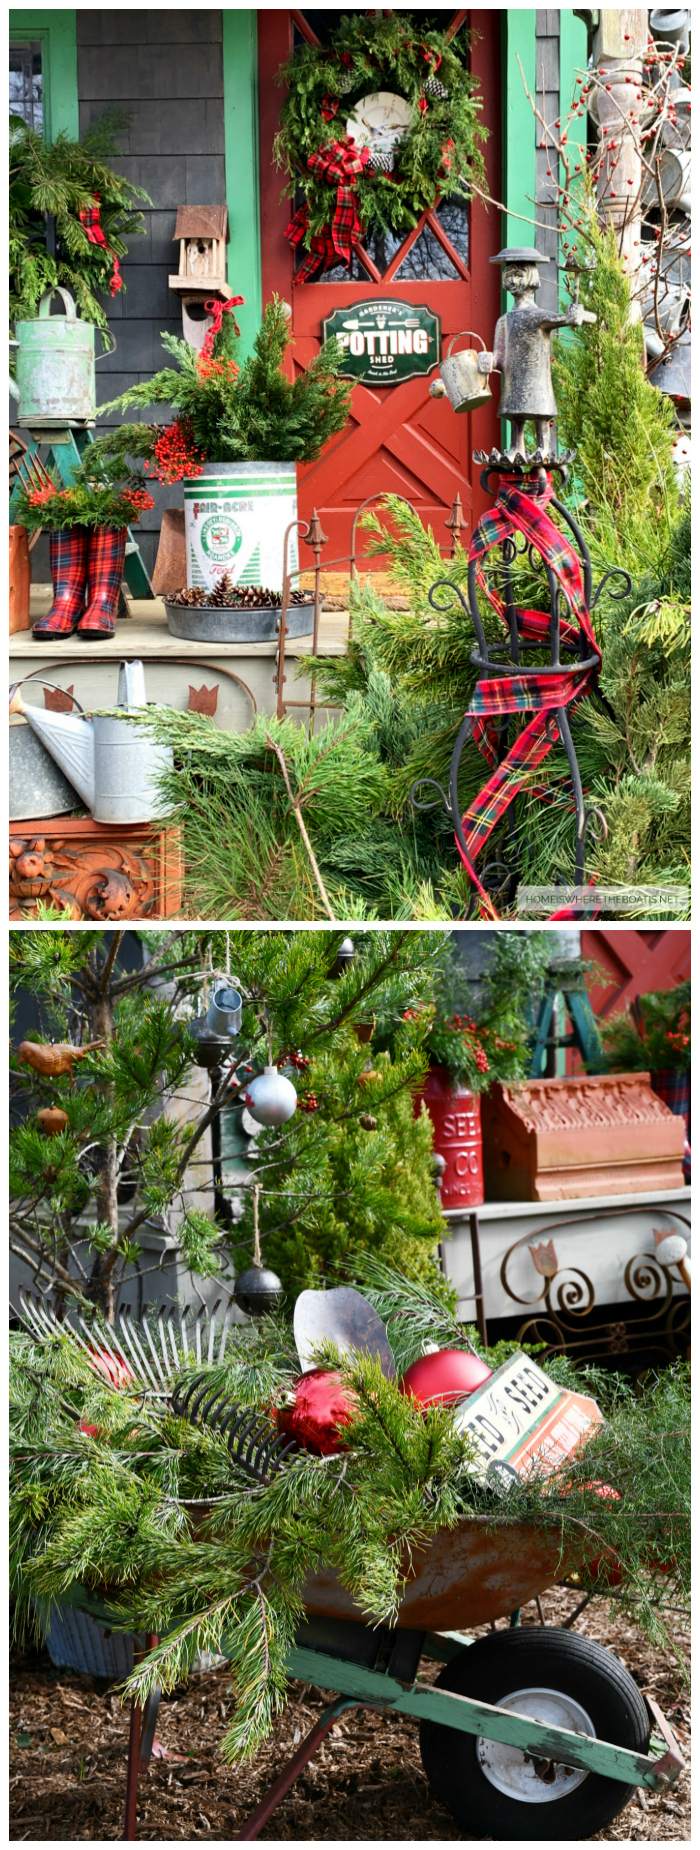 Christmas Around the Potting Shed | ©homeiswheretheboatis.net #shed #christmas #greenery #garden